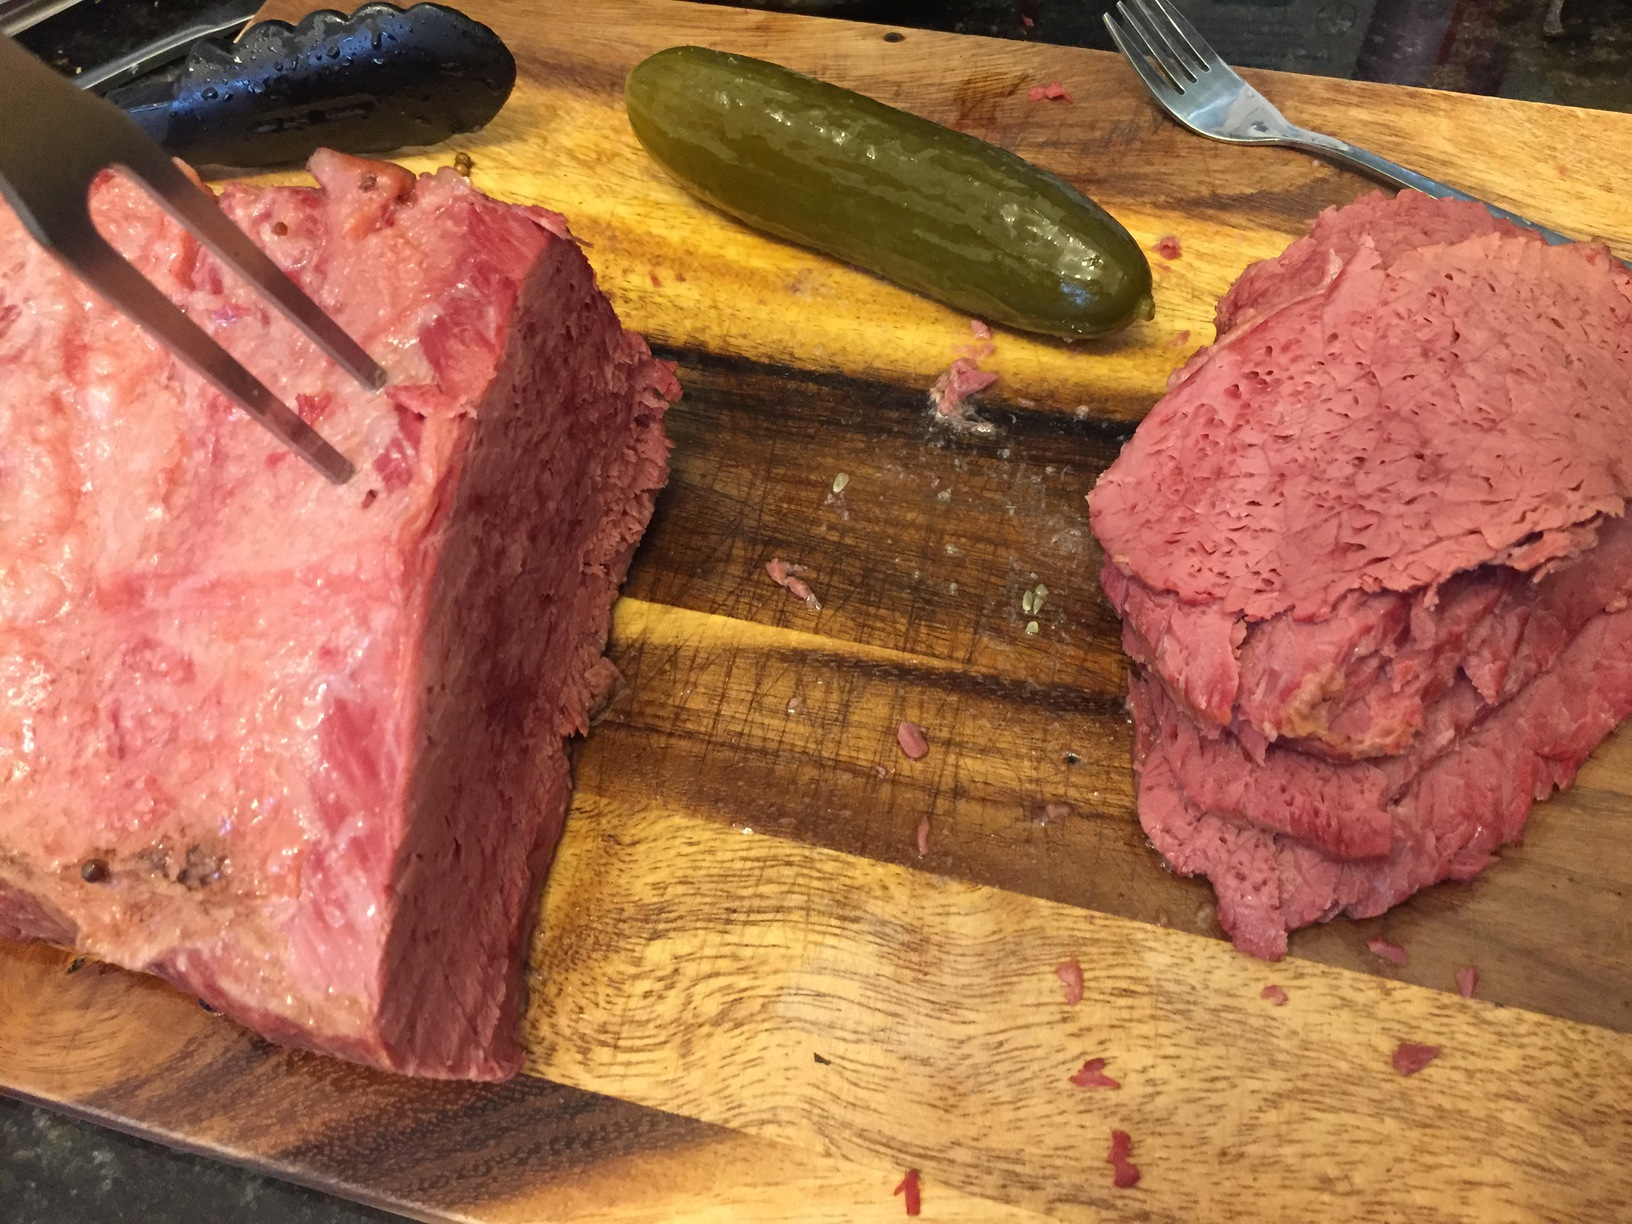 Corned beef sliced up and ready to load onto a sandwich